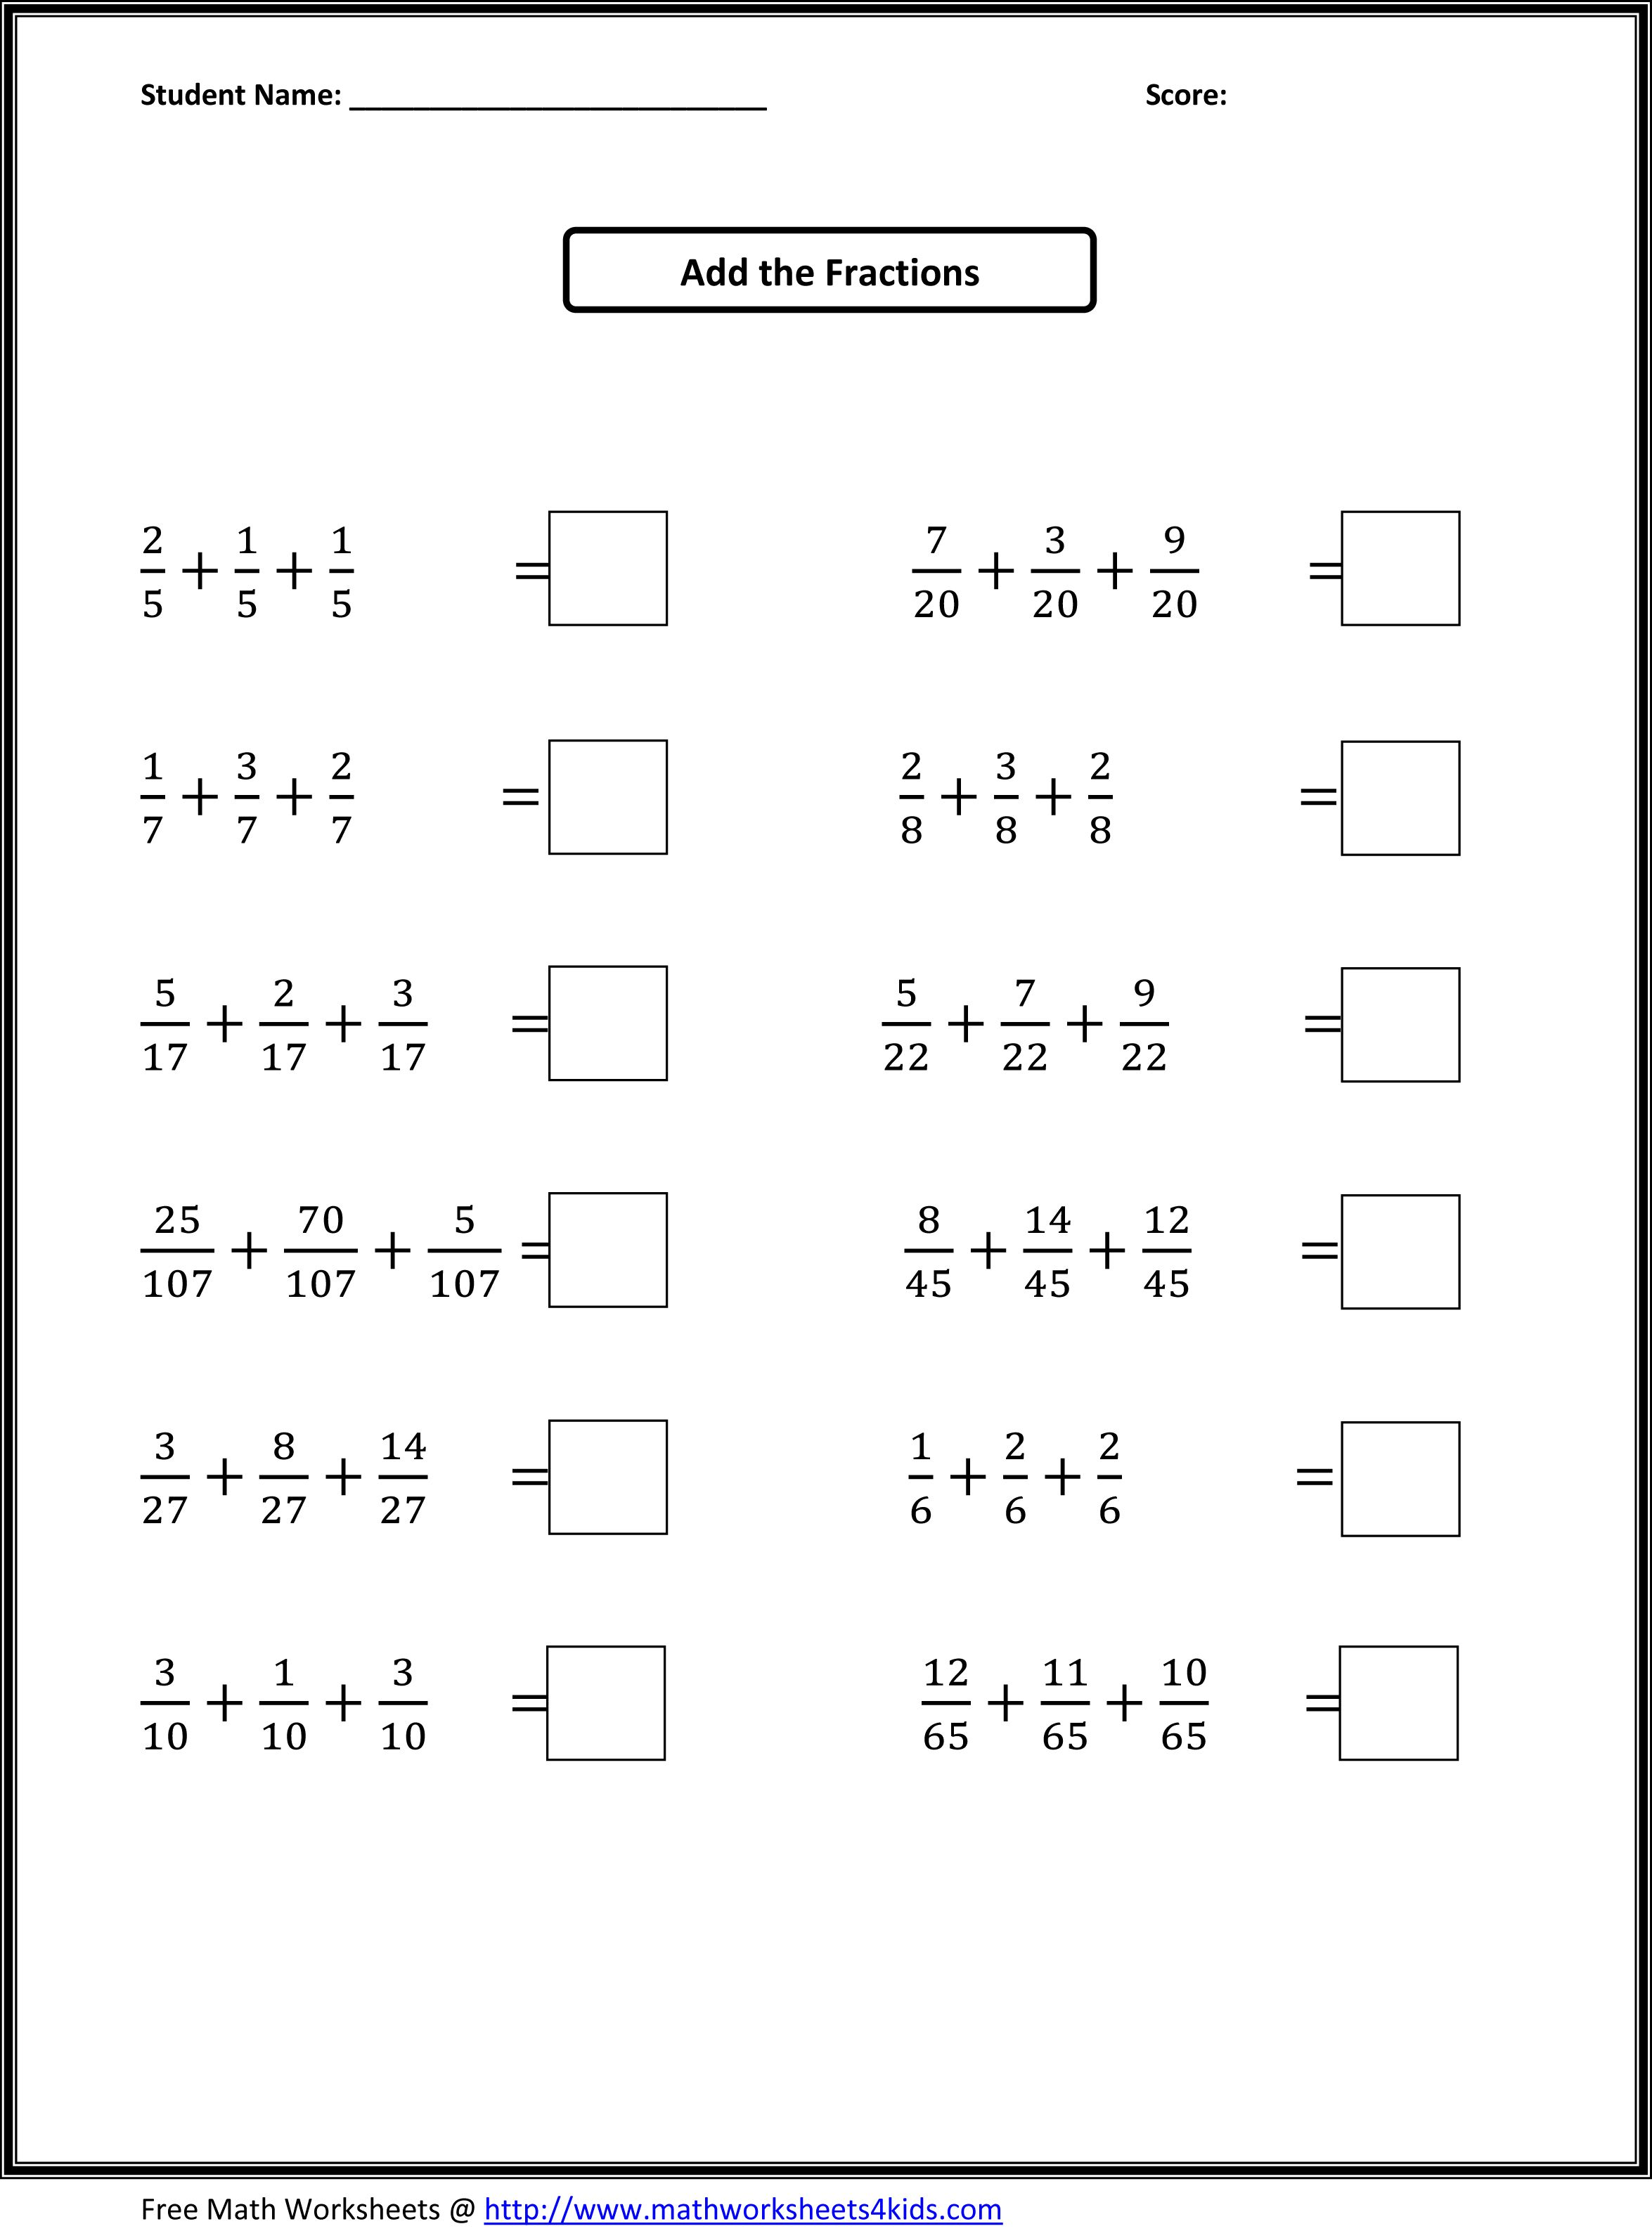 Worksheets for all early ed grades All topics of math – Adding and Subtracting Fractions Worksheets Pdf